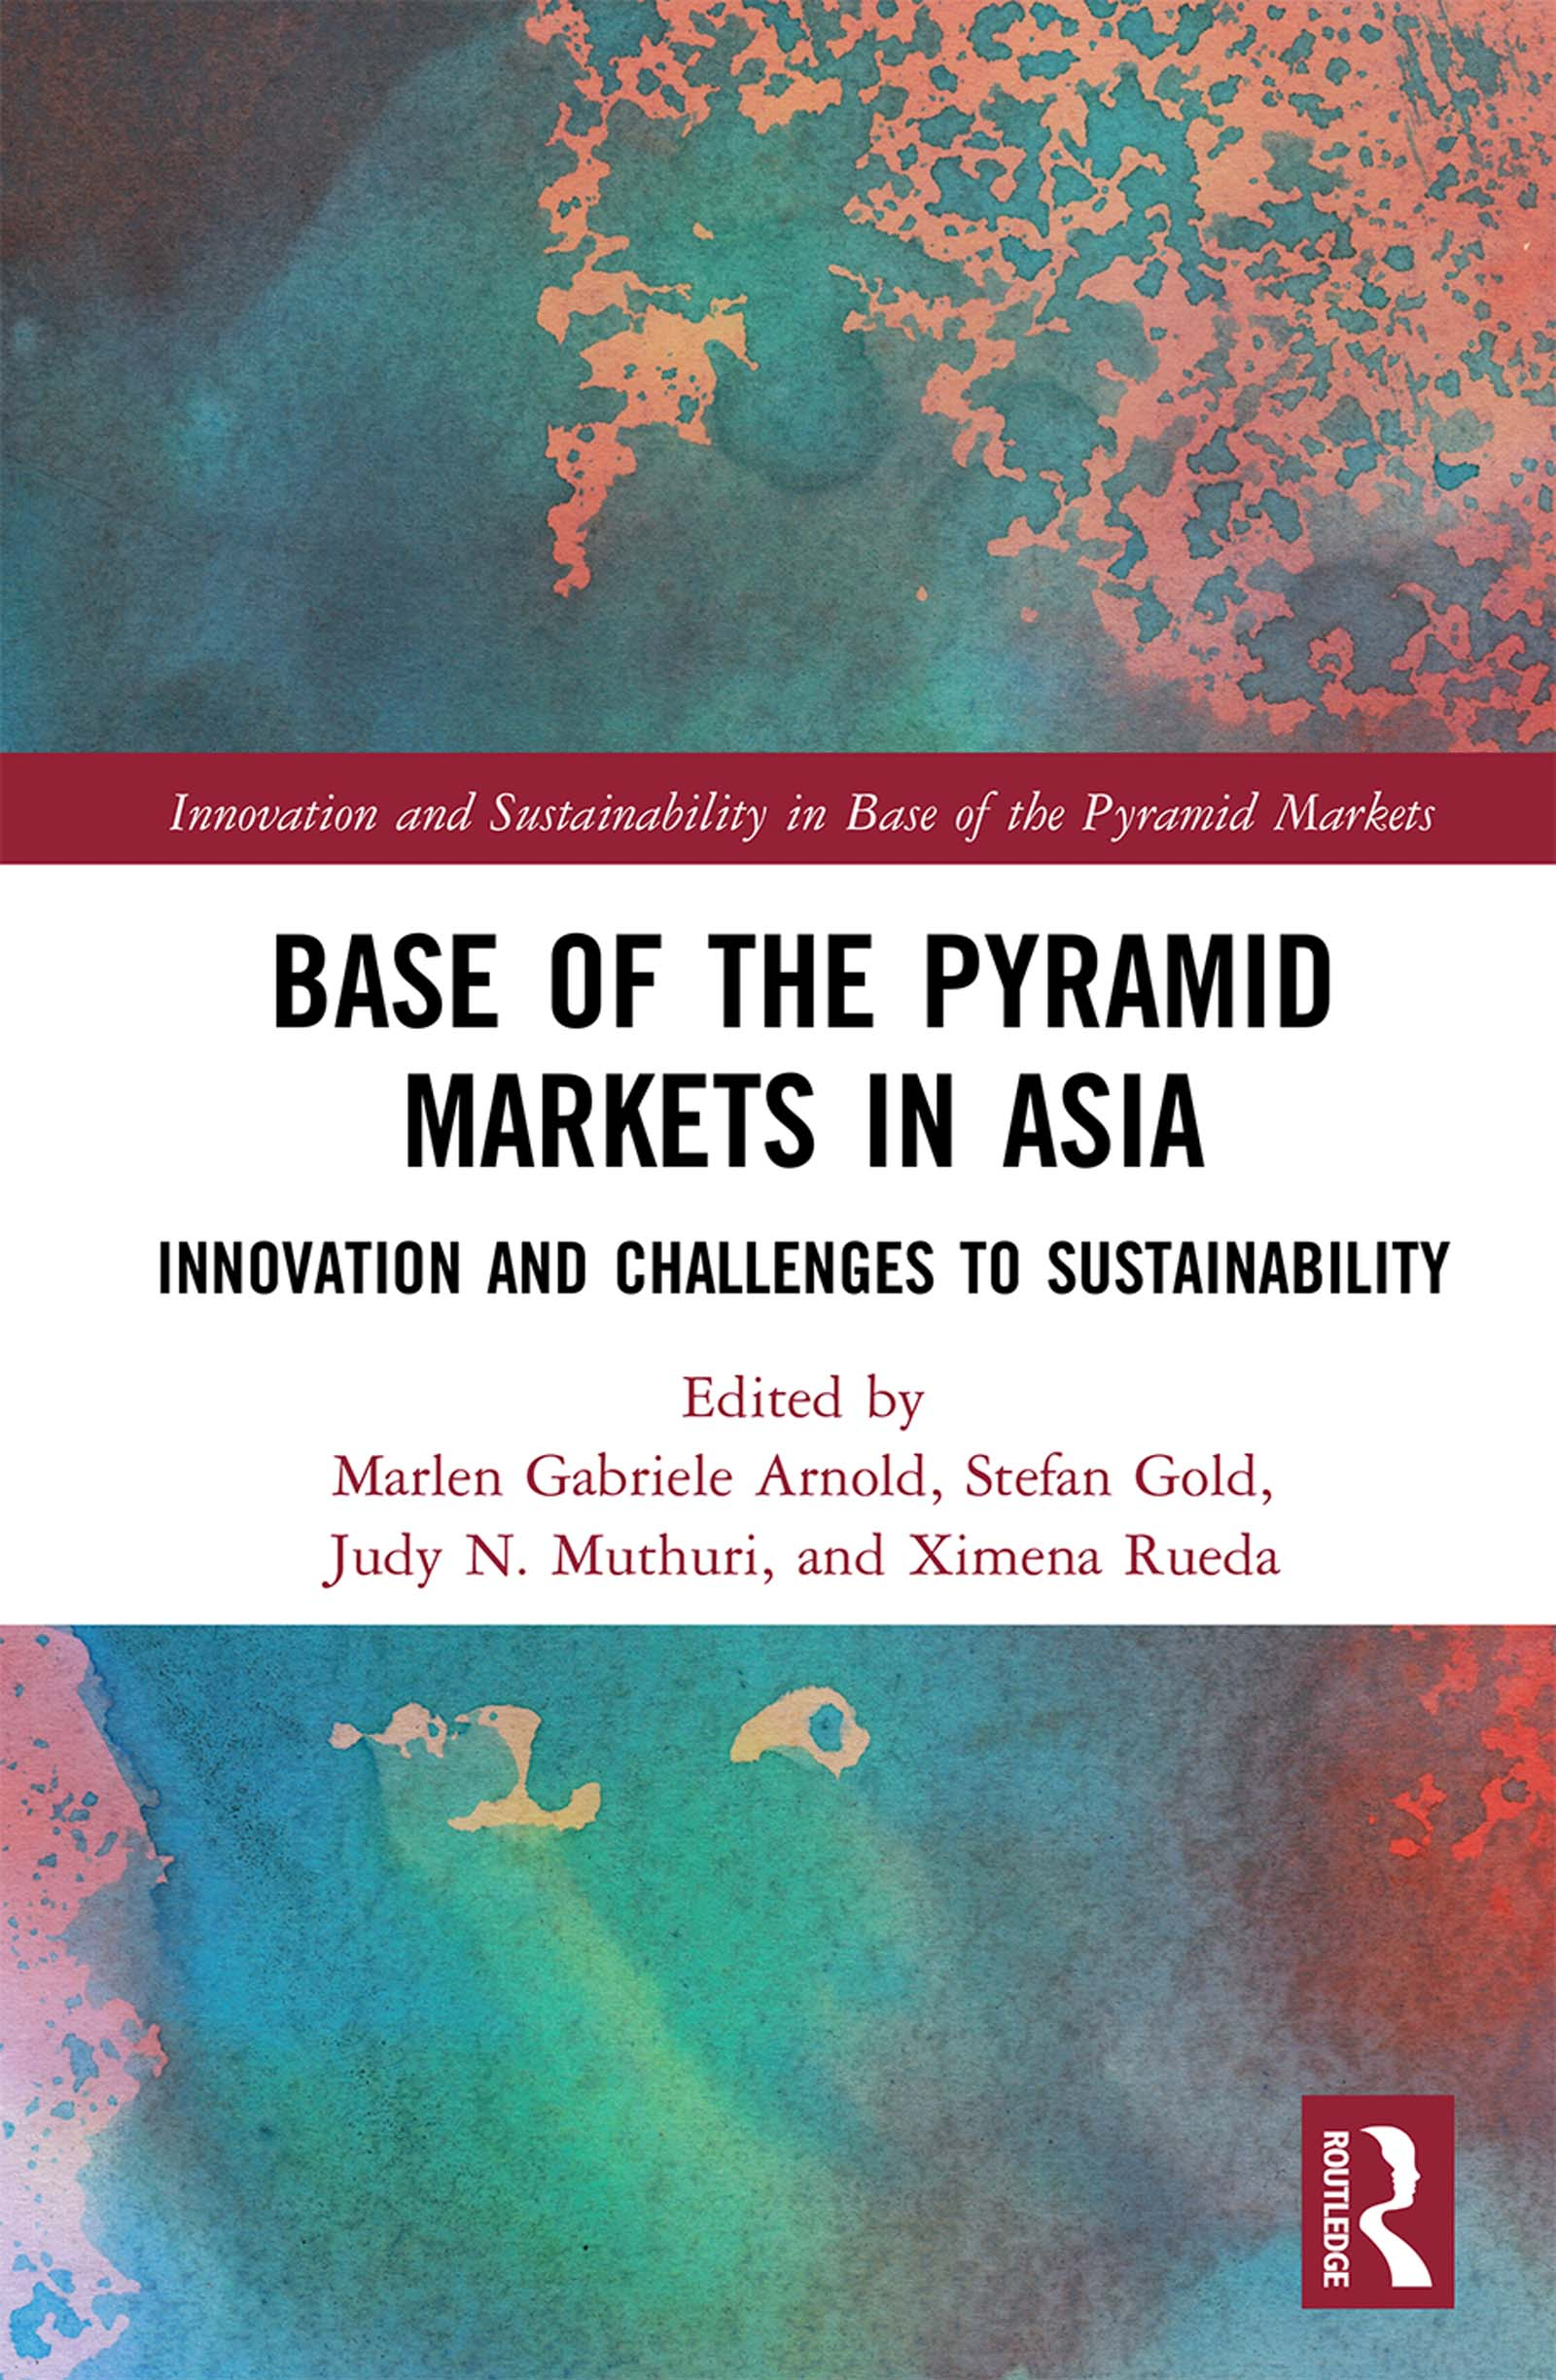 Base of the Pyramid Markets in Asia: Innovation and Challenges to Sustainability book cover